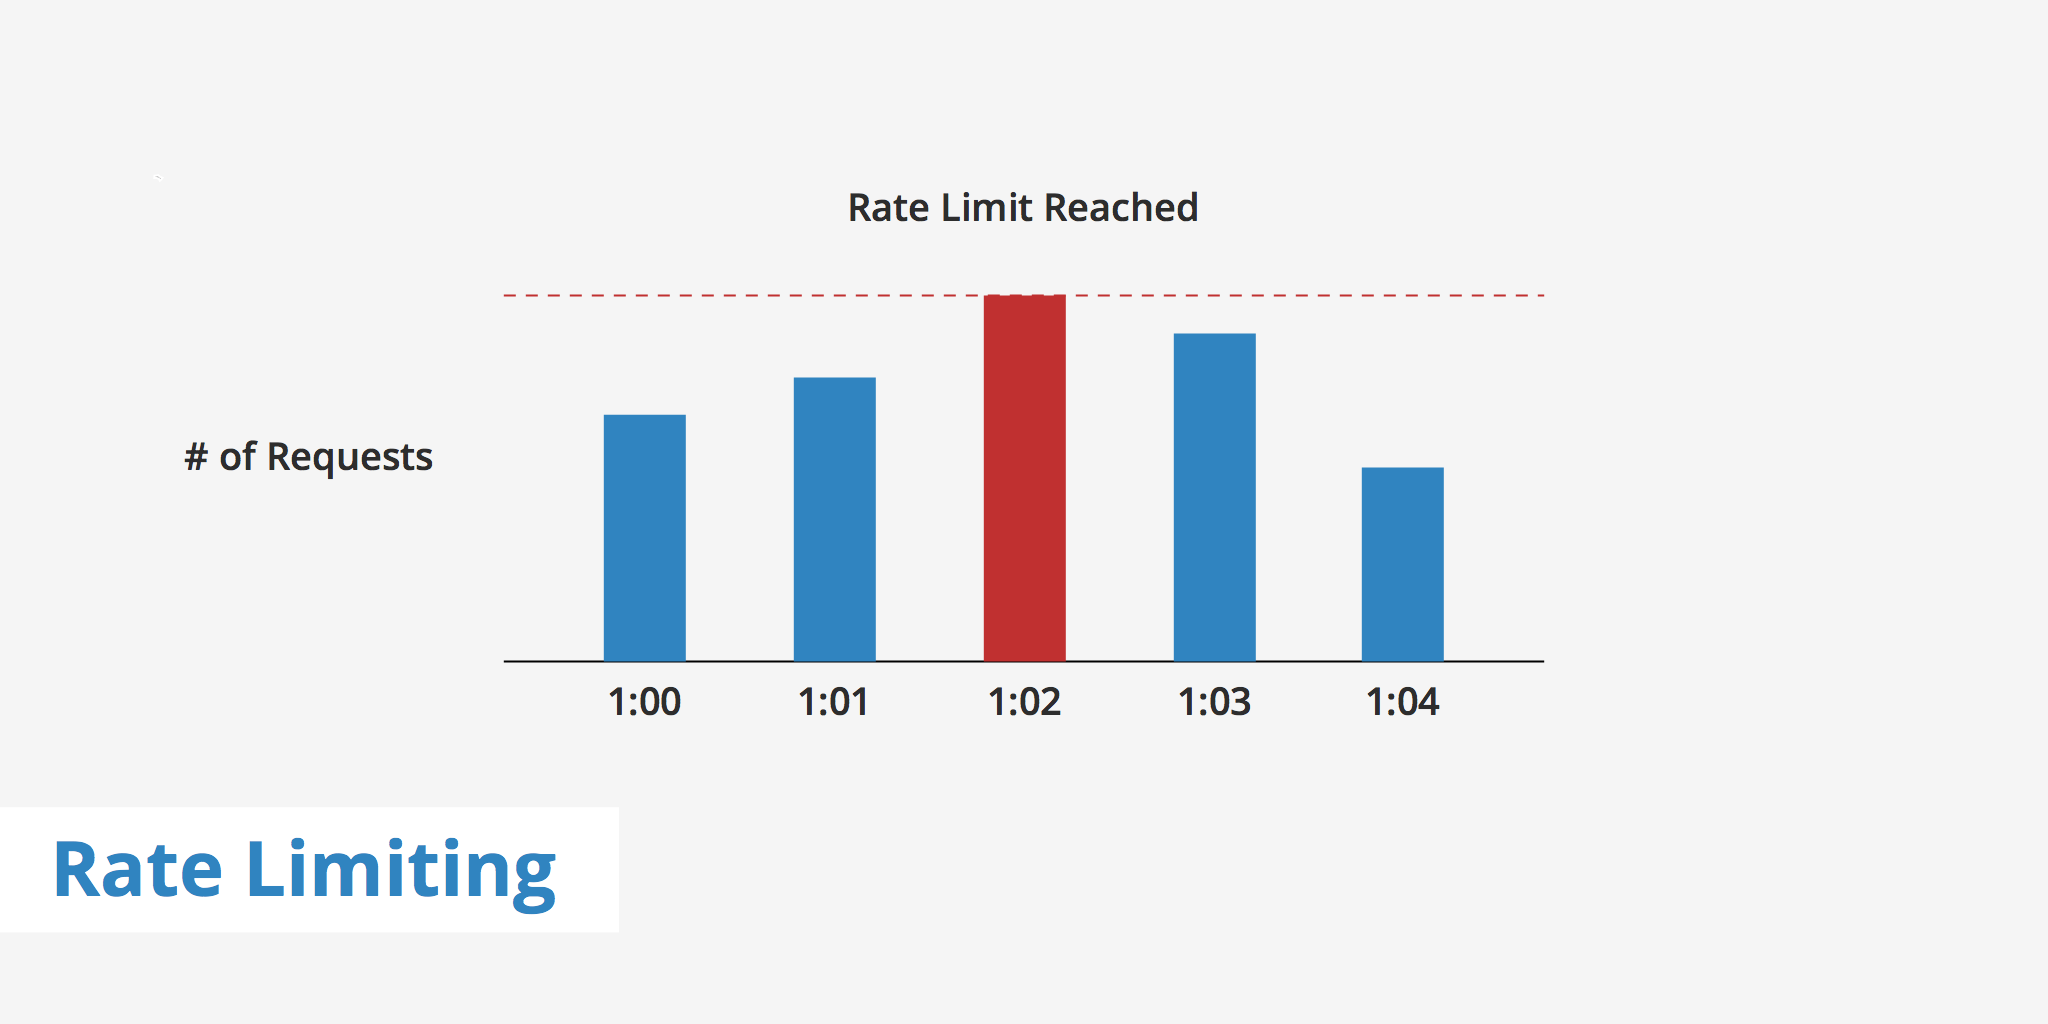 What Is Rate Limiting?